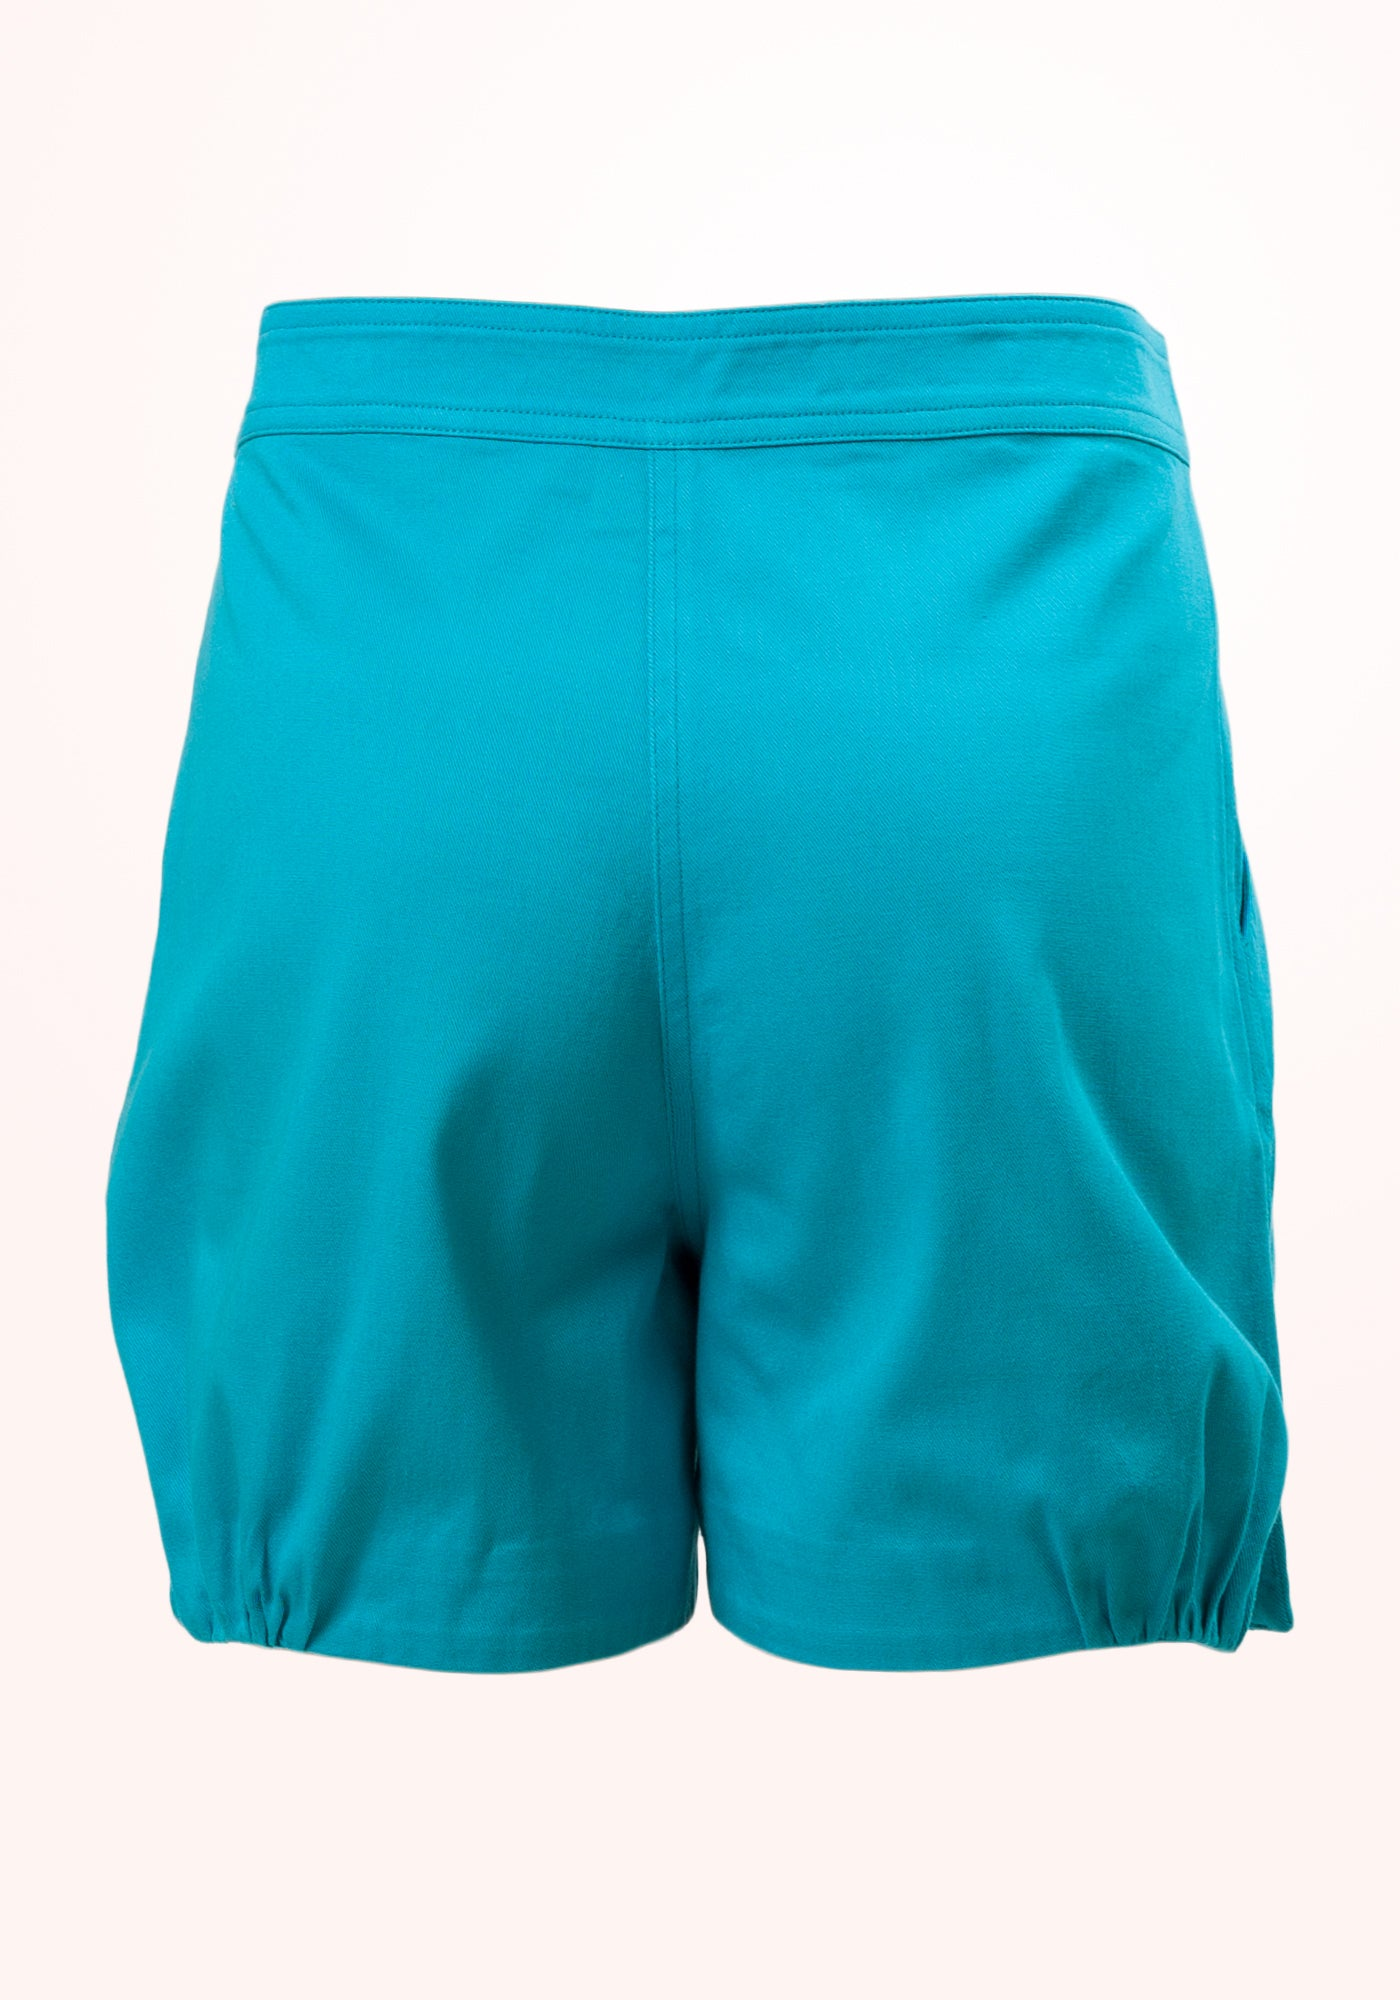 Blue Lagoon Girls Shorts in Cotton Twill - MINC ecofashion